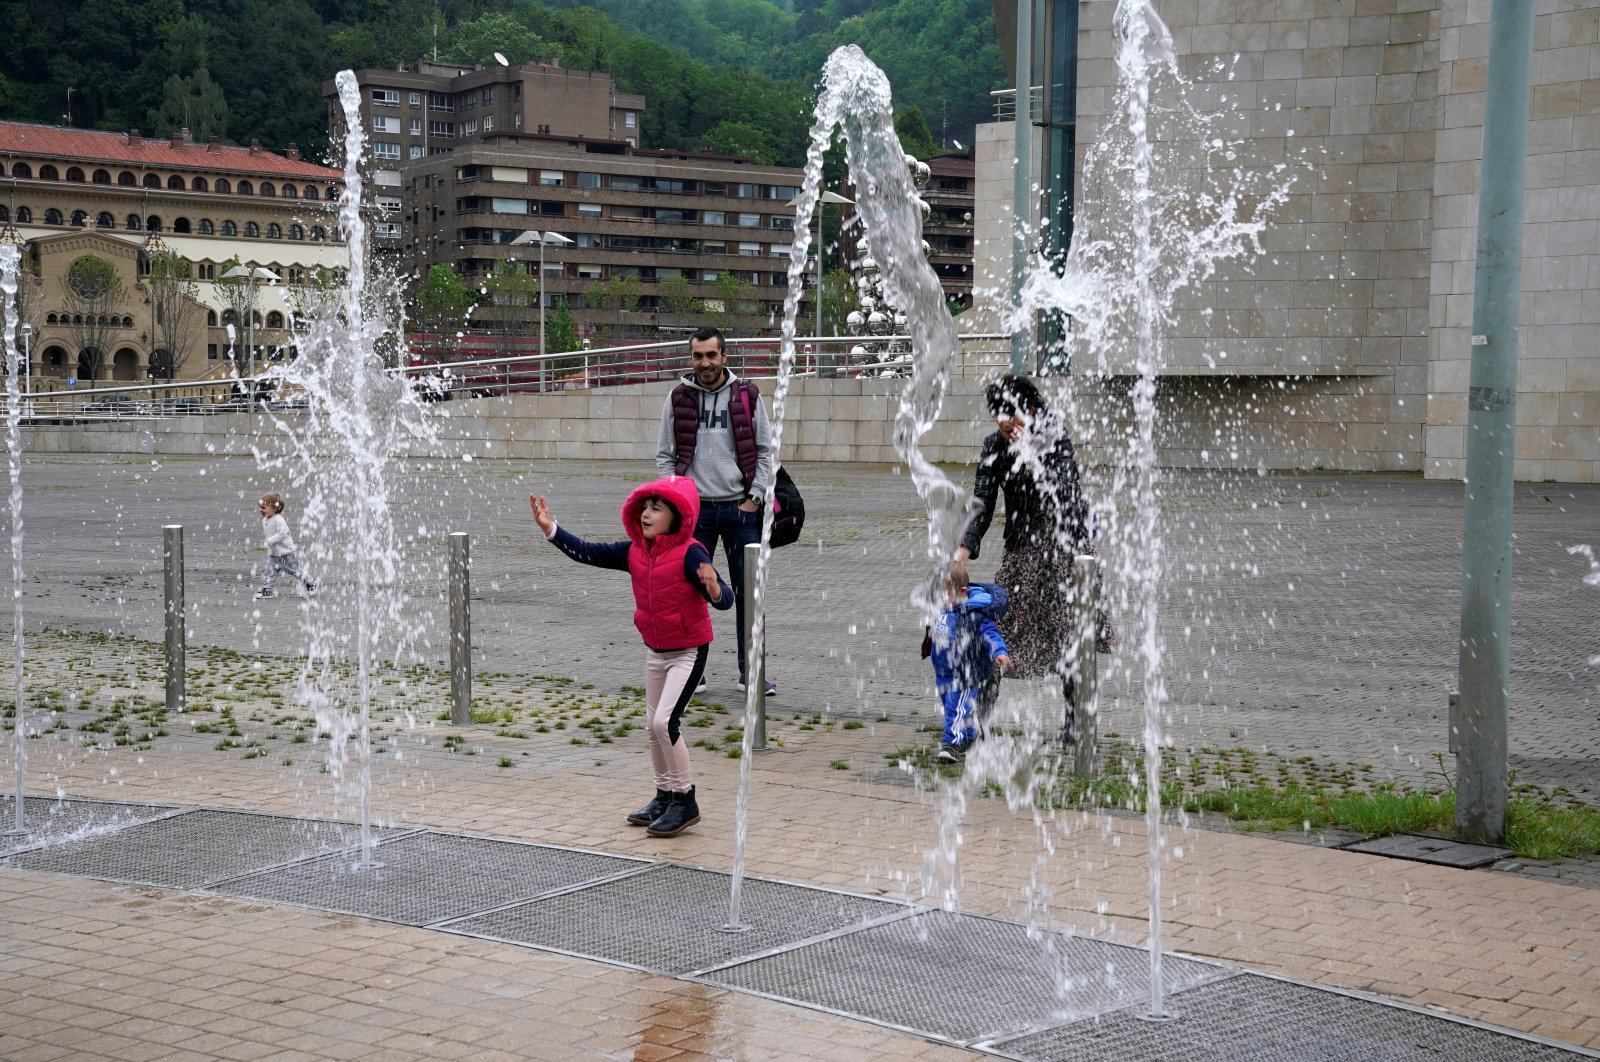 A girl plays in a fountain at the Guggenheim Museum, after restrictions were partially lifted for children, Bilbao, Spain, April 26, 2020. (REUTERS Photo)